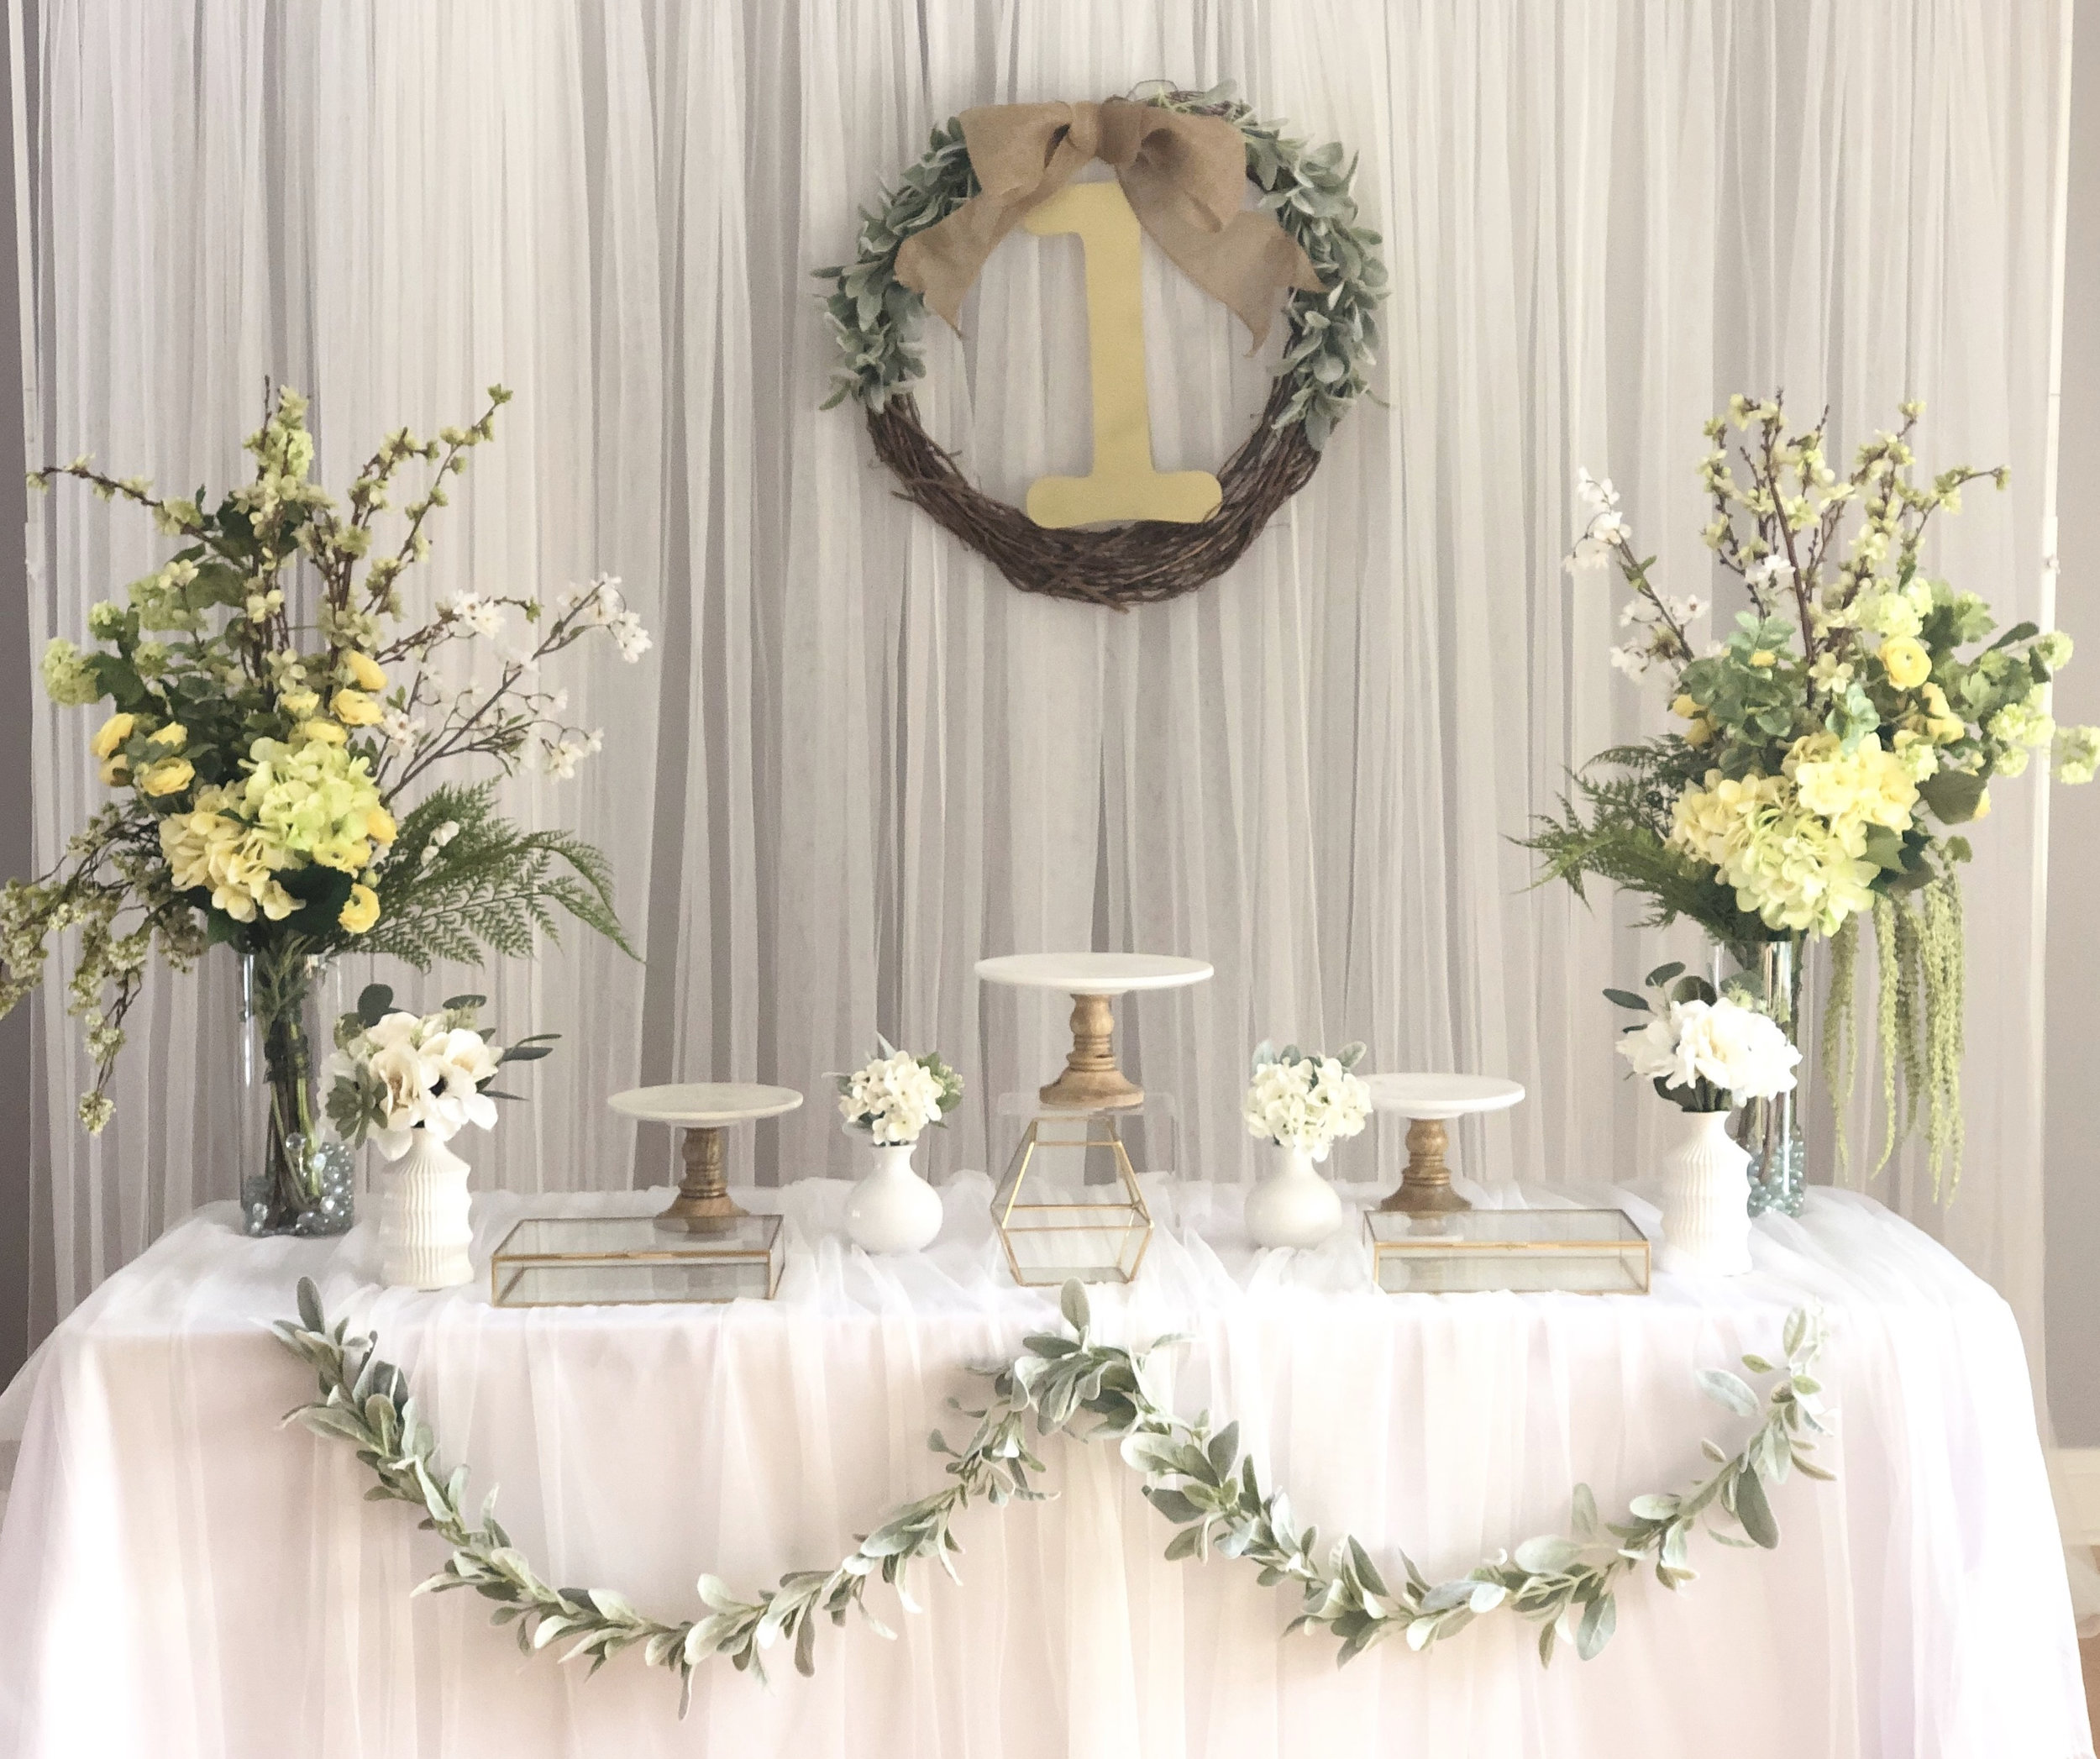 simple green - Included : backdrop, 1st Birthday hanging wreath, 3 cake stands, silk flowers and vases, Gold glass boxes.상품 구성: 1st Birthday 리스, 케익 스탠드 3개, 조화 꽃 & 꽃병, 작은 꽃 & 꽃병 4개, 골드 박스 3개.Plus, MODERN DOLJABI TABLE & PHOTO TABLE